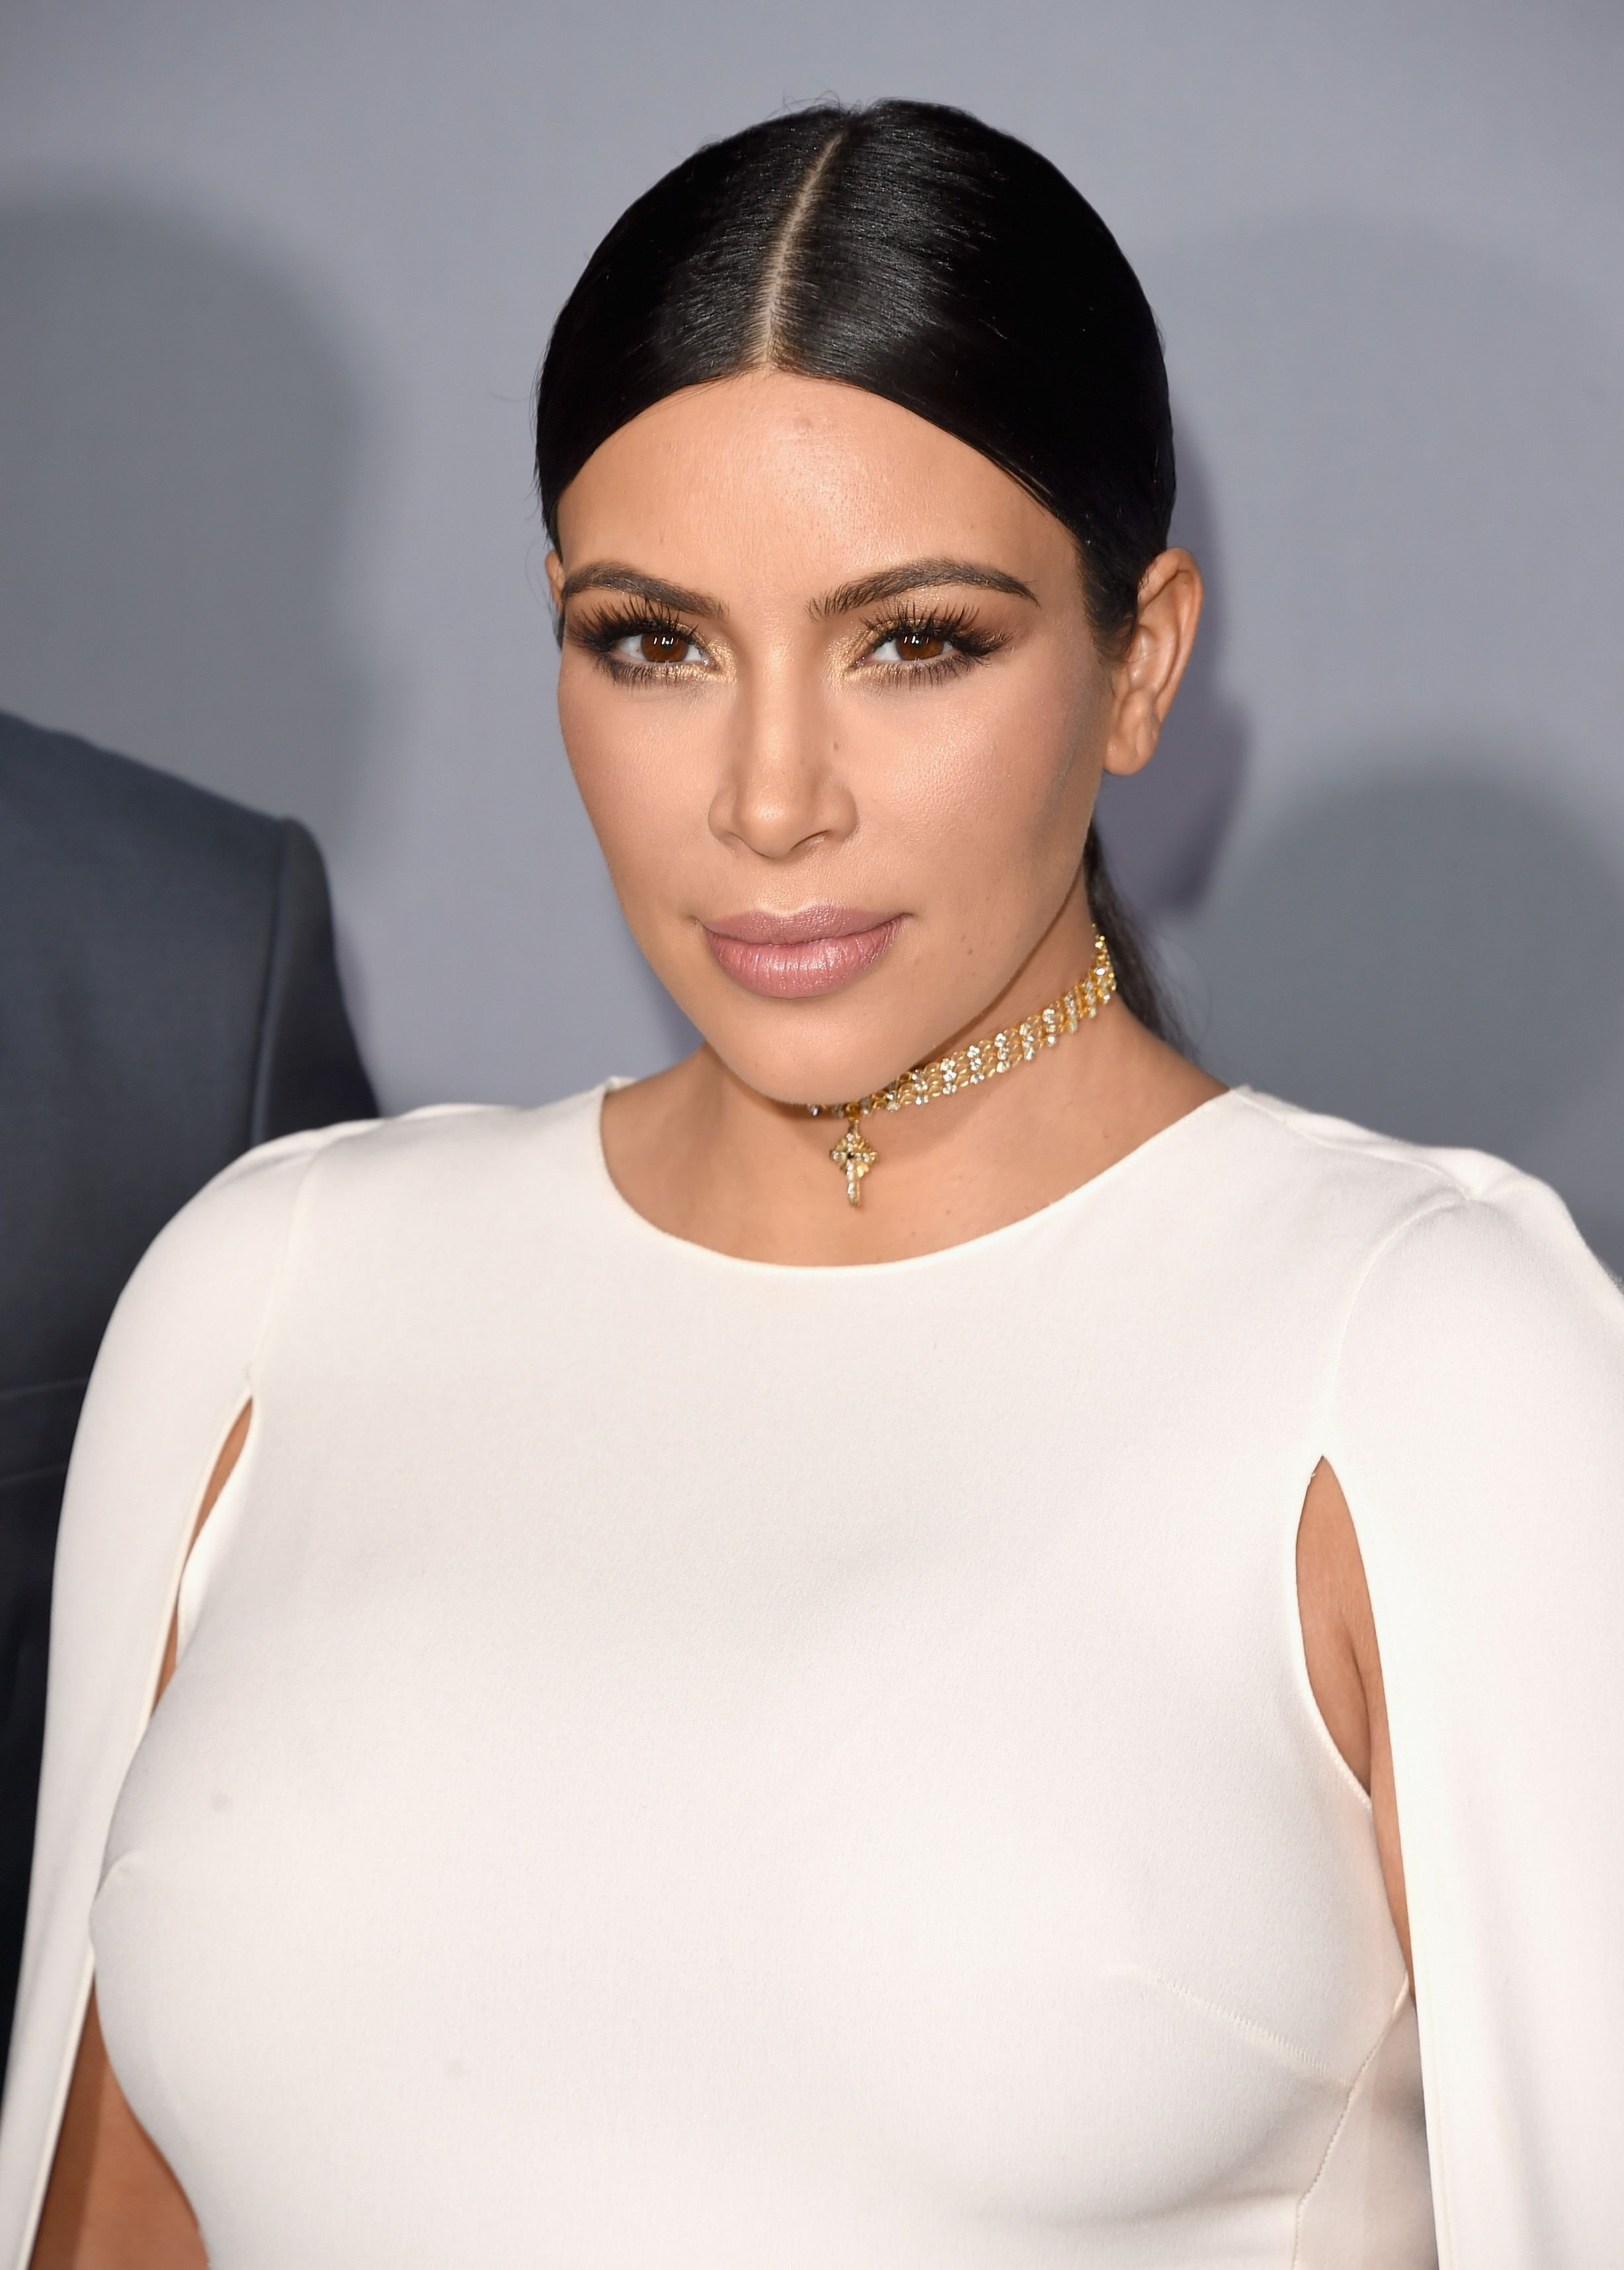 Kim Kardashian at the InStyle Awards at Getty Center on October 26, 2015 in Los Angeles, California | Photo: Getty Images